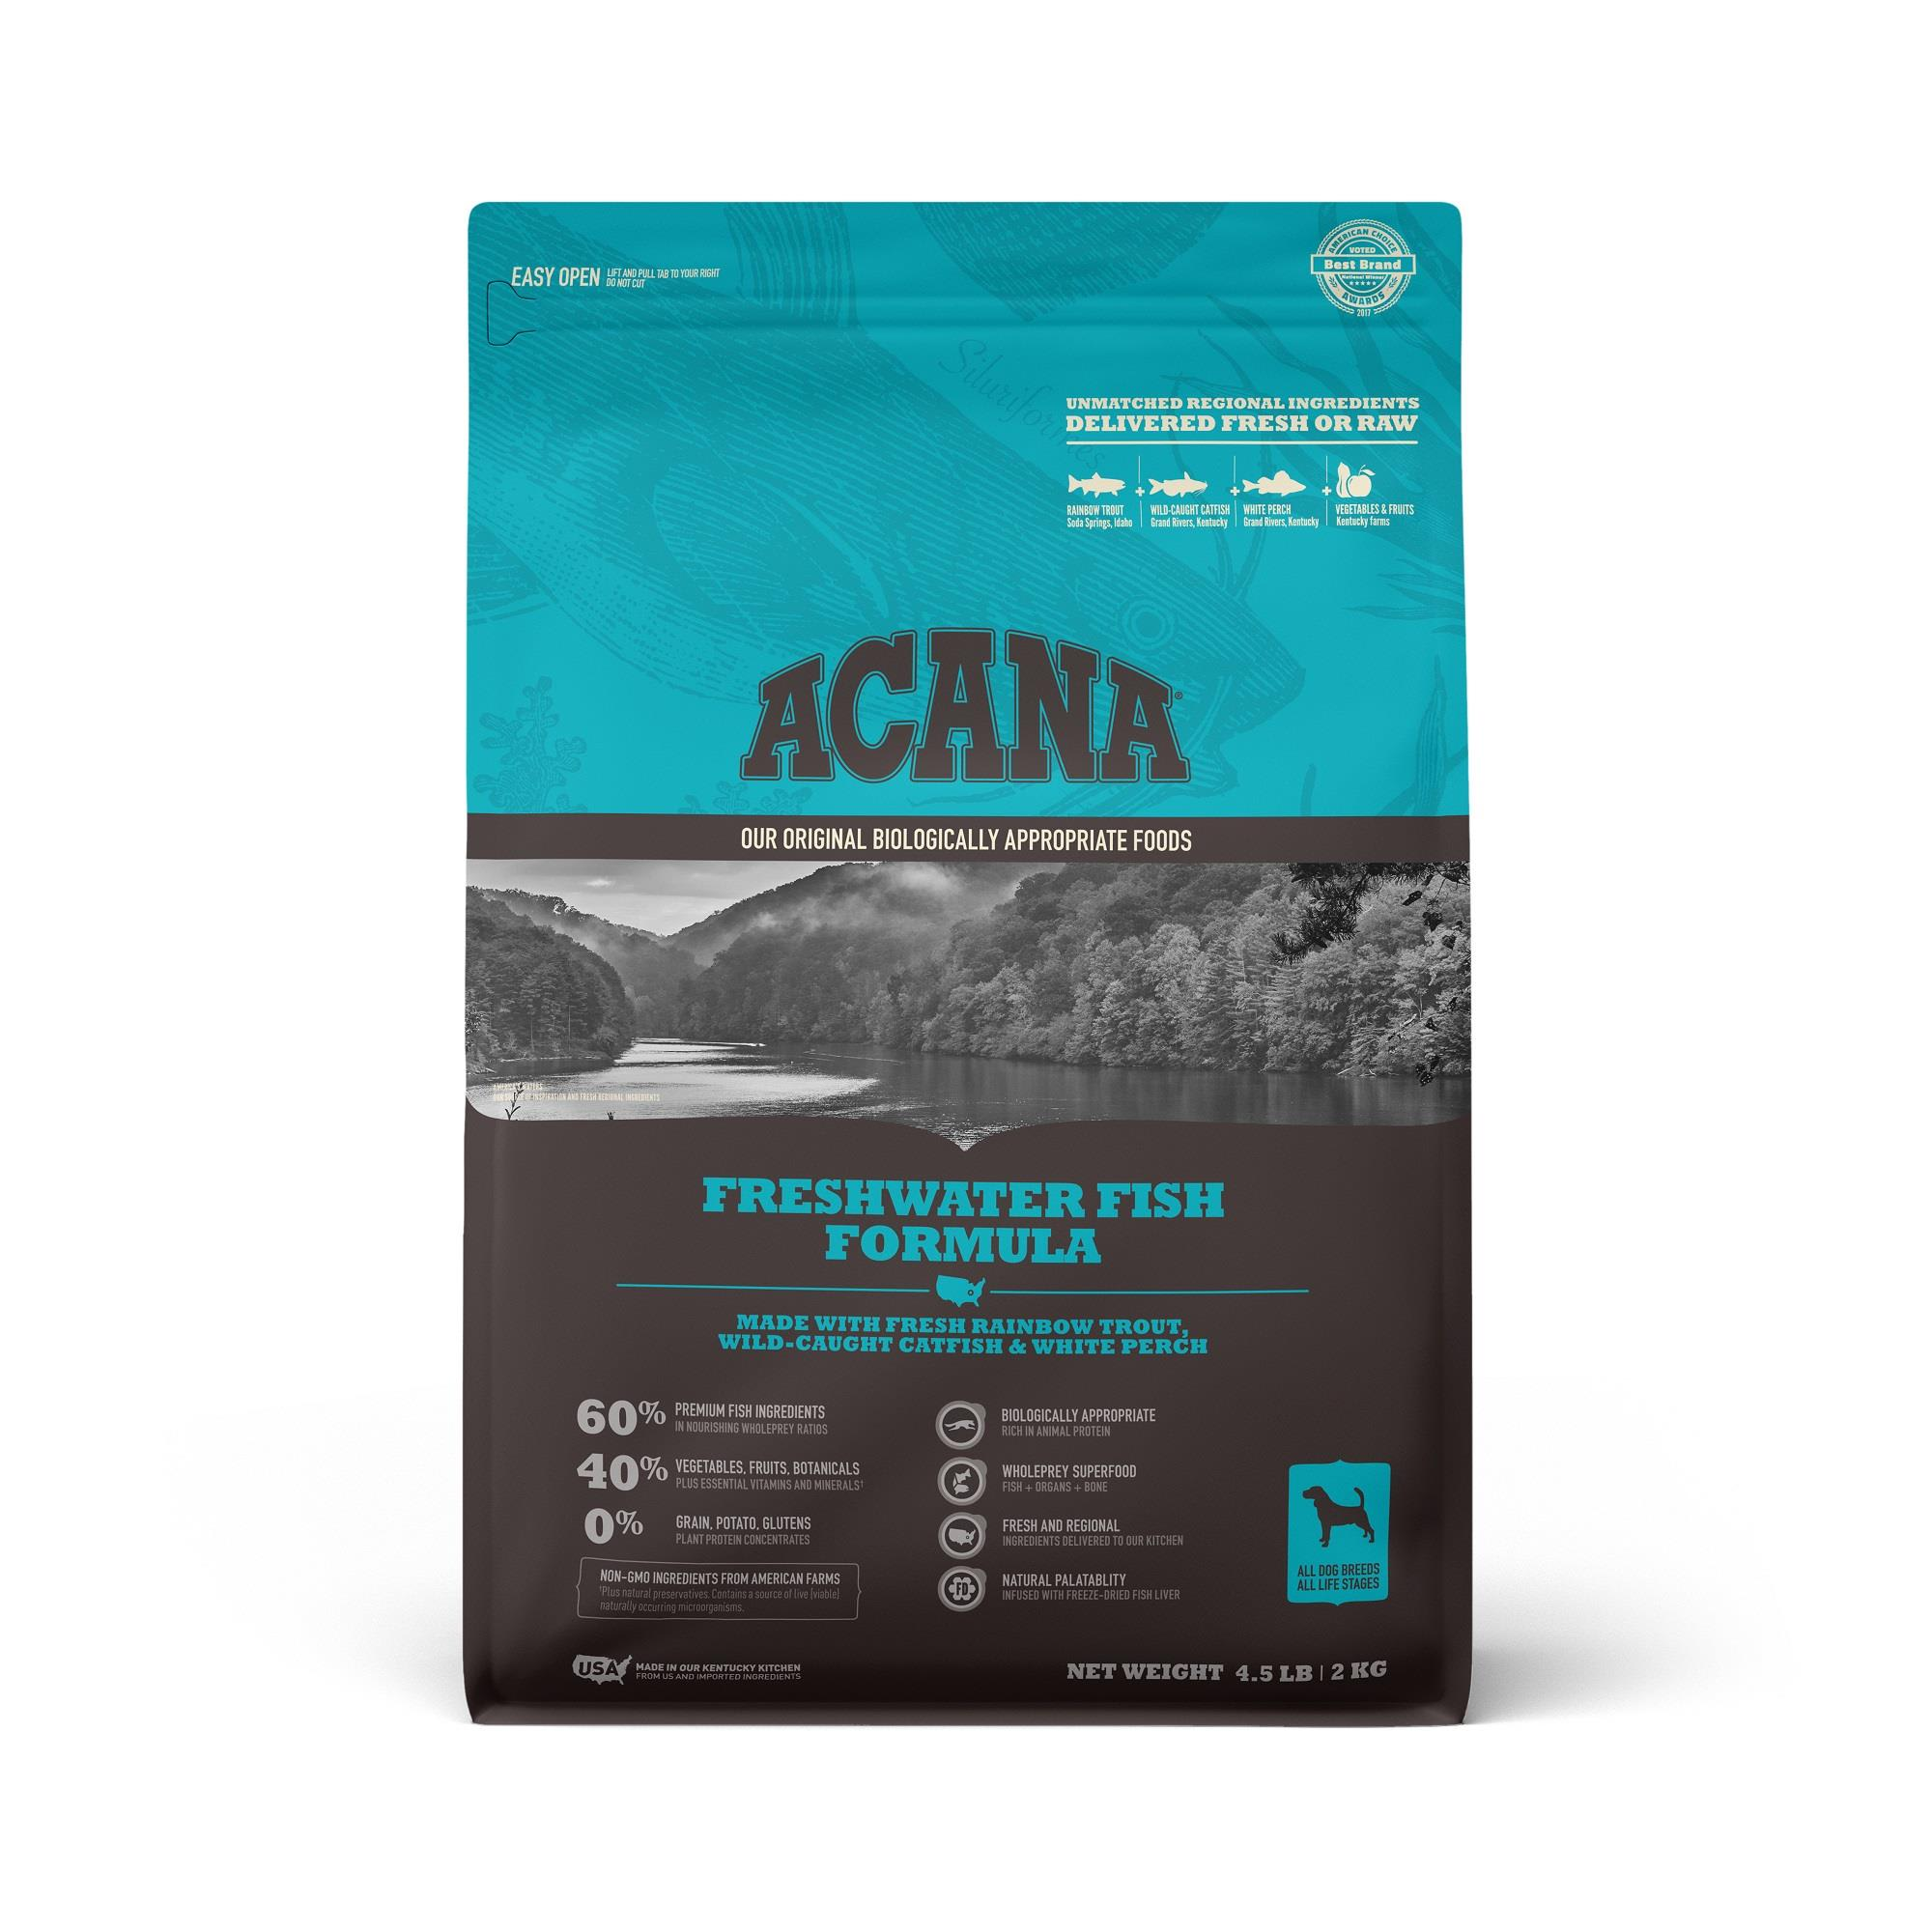 ACANA Grain-Free Freshwater Fish Whole Trout Catfish and Perch Dry Dog Food, 4.5 lbs.